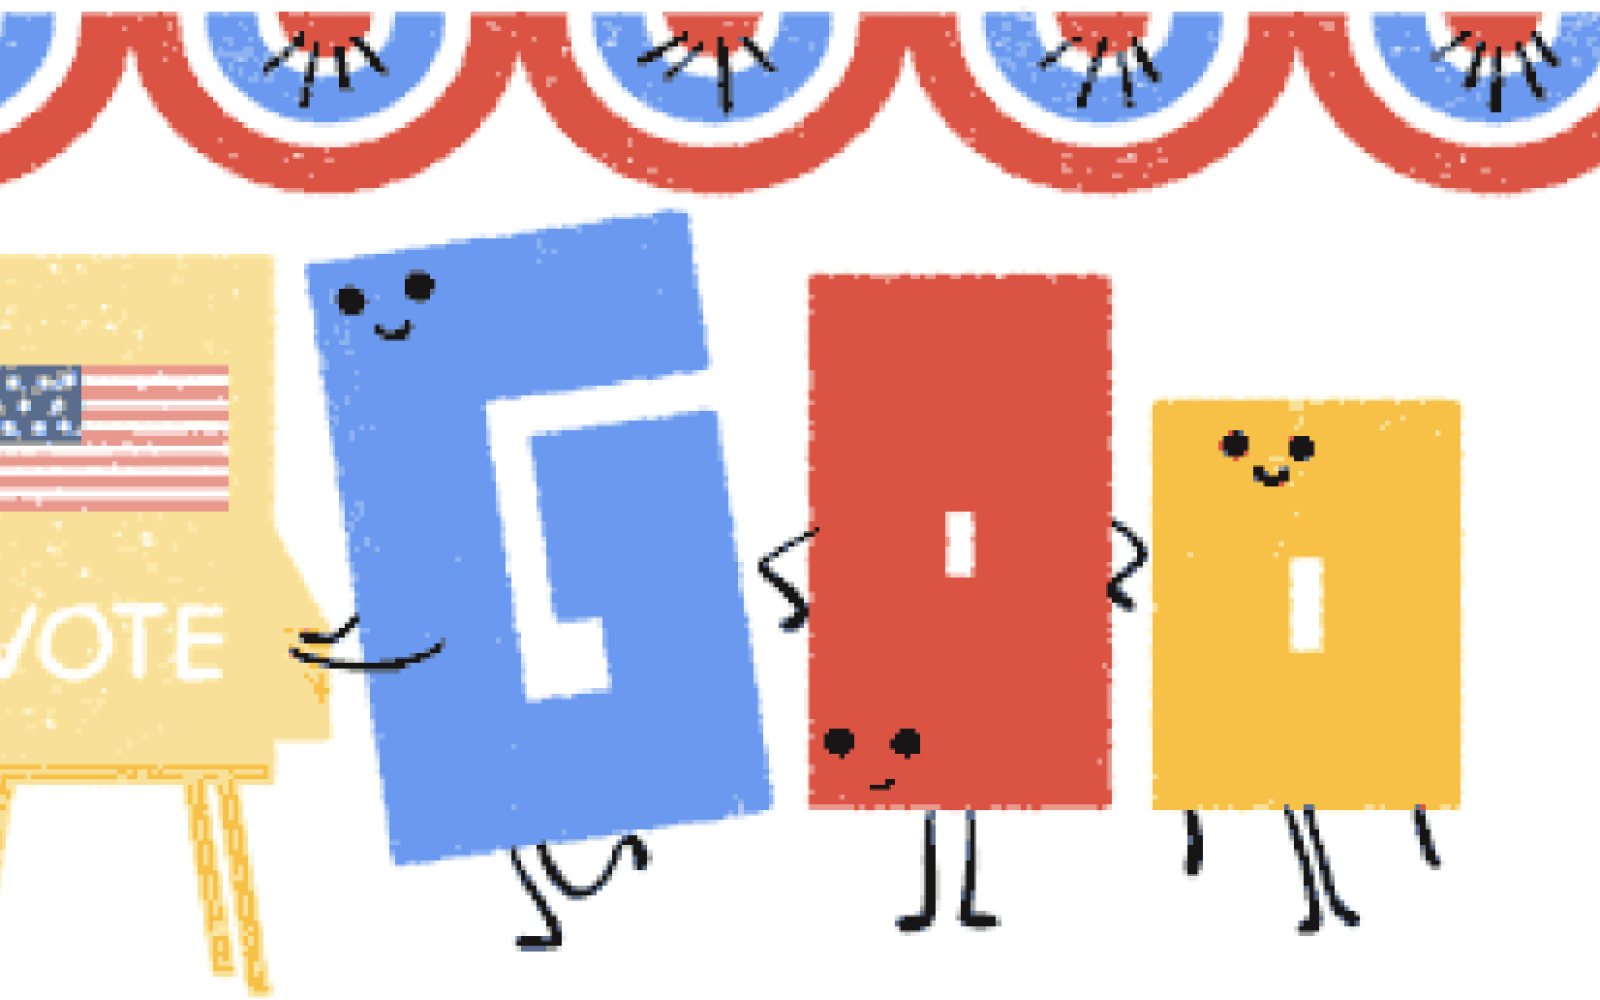 Here's how much Google seriously wants you to vote (in case you